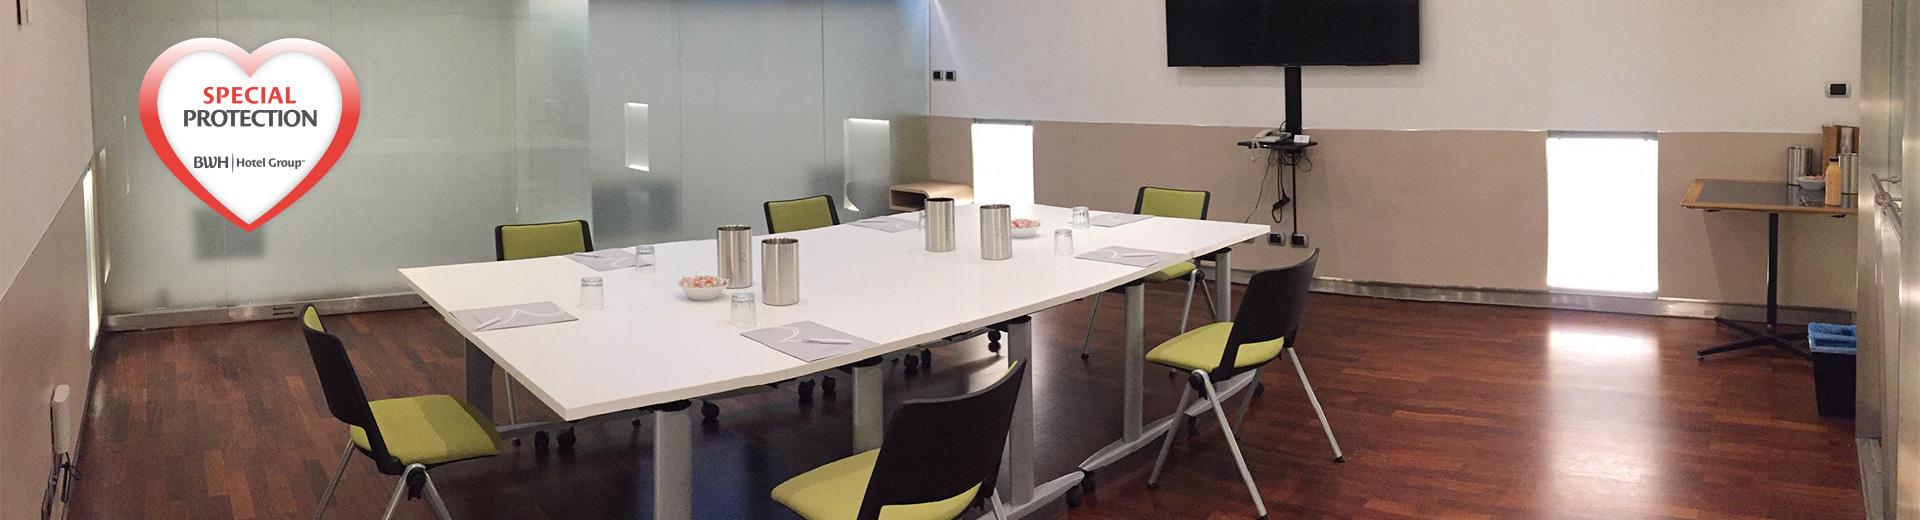 Meeting rooms and conferences in Rome - Roscioli Hotels